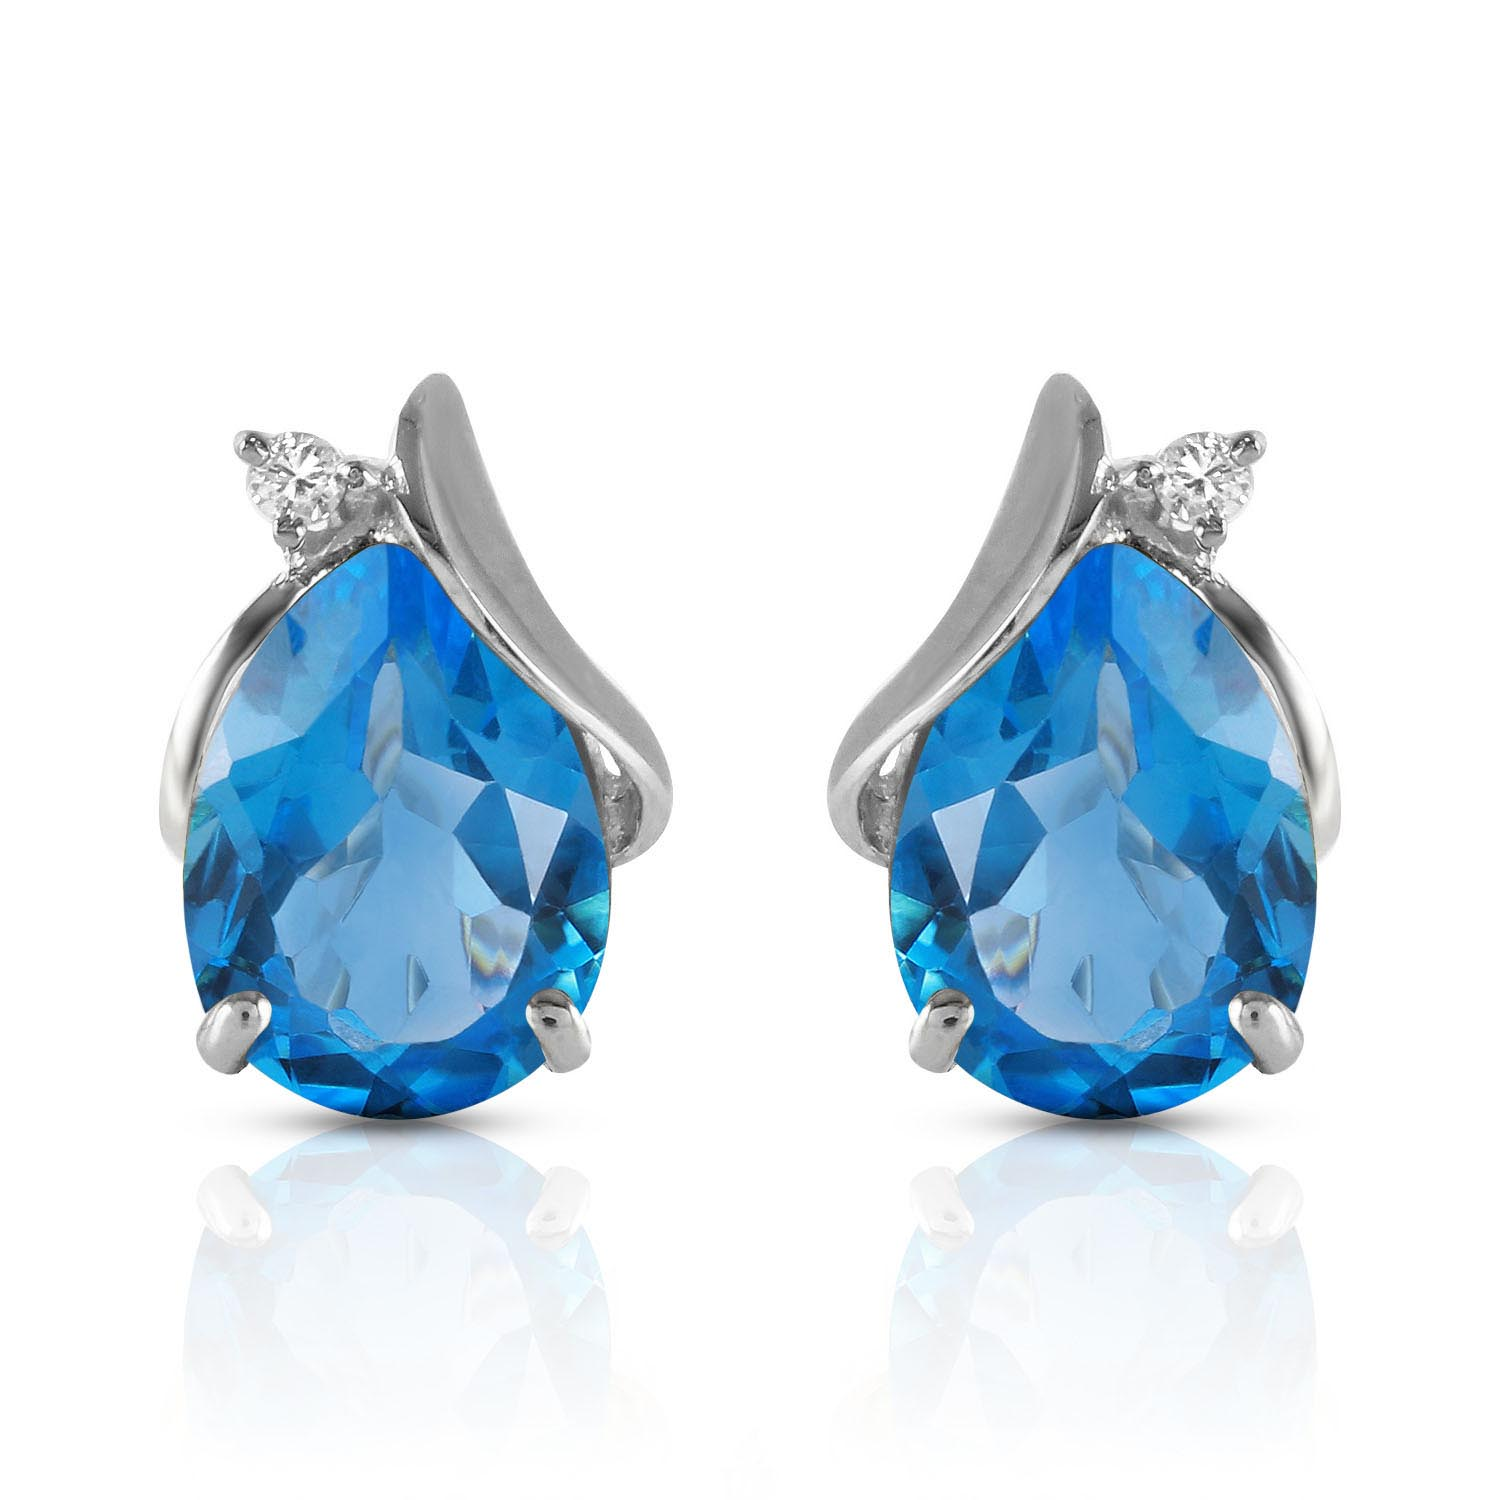 Blue Topaz and Diamond Stud Earrings 5.0ctw in 9ct White Gold